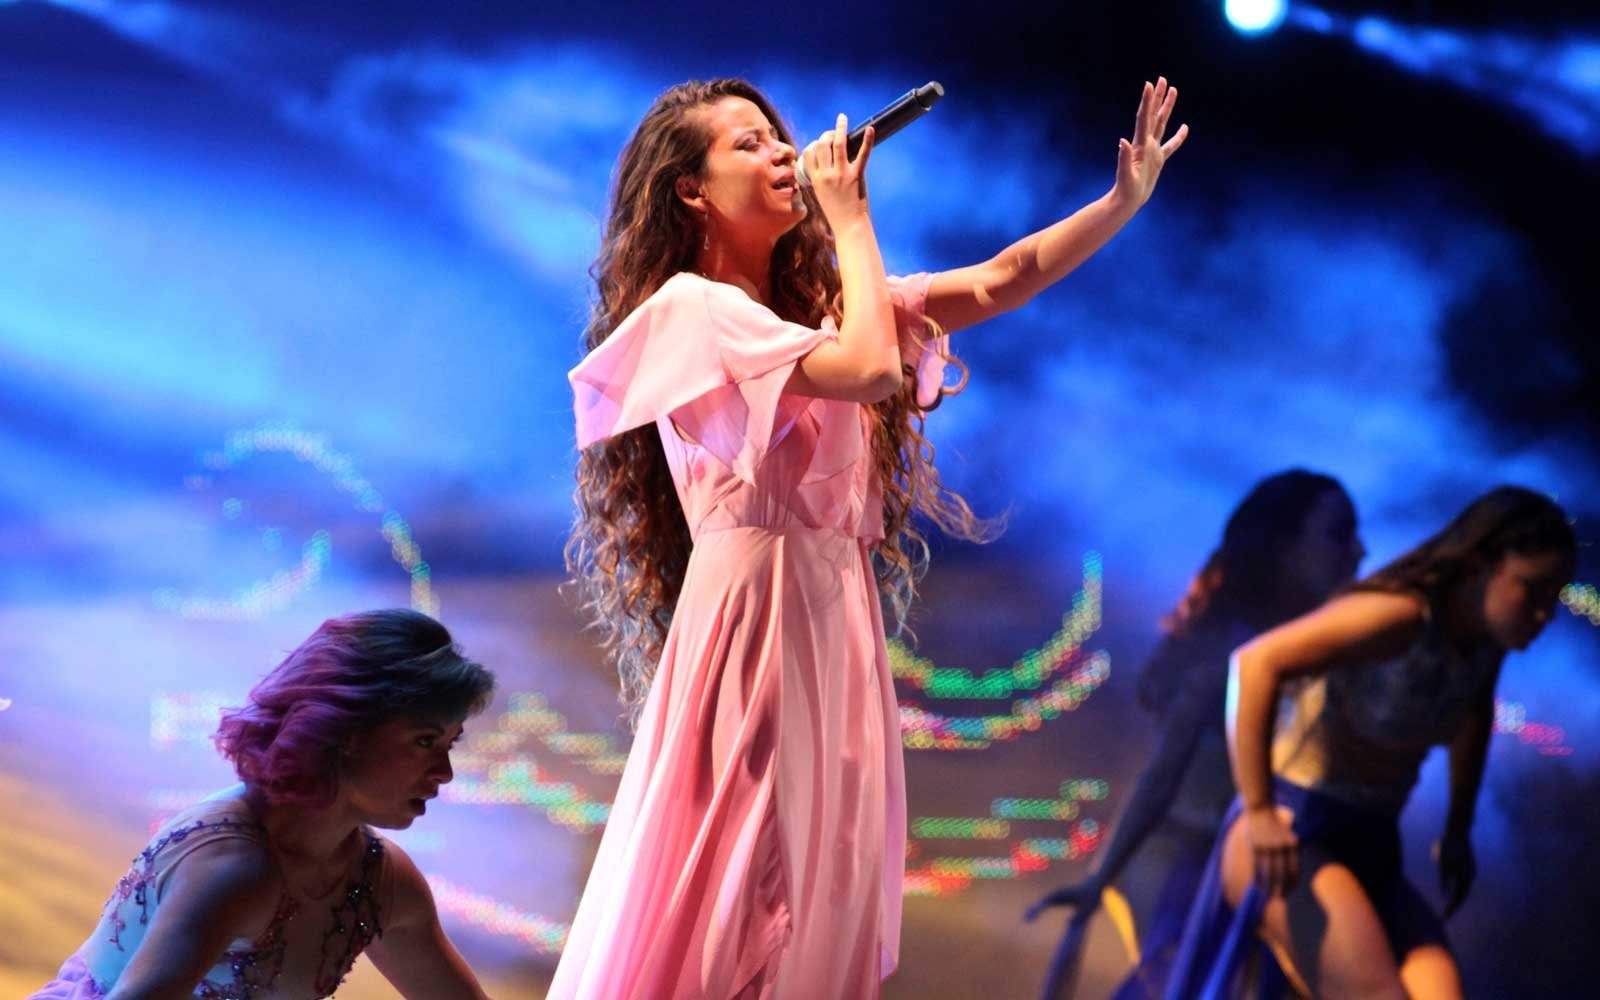 A singer performs at the Viña del Mar International Song Festival, Peru